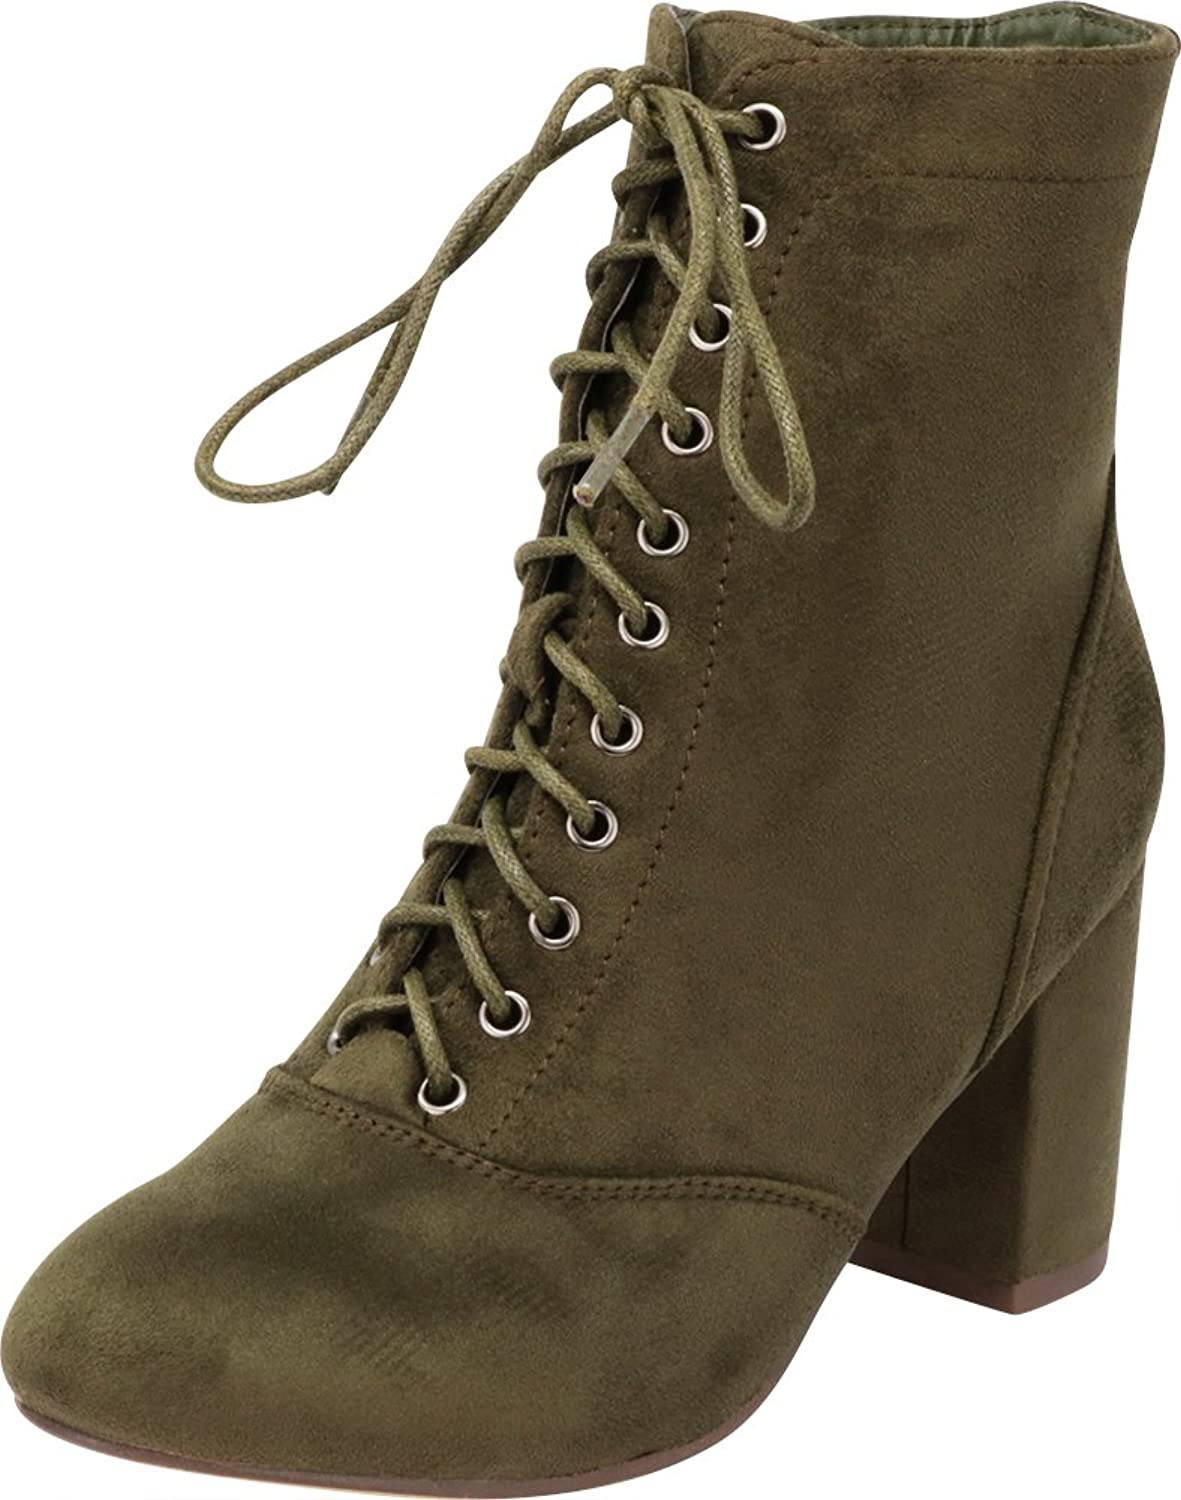 Cambridge Select Women's Closed Round Toe Lace-up Chunky Block Heel Ankle Bootie